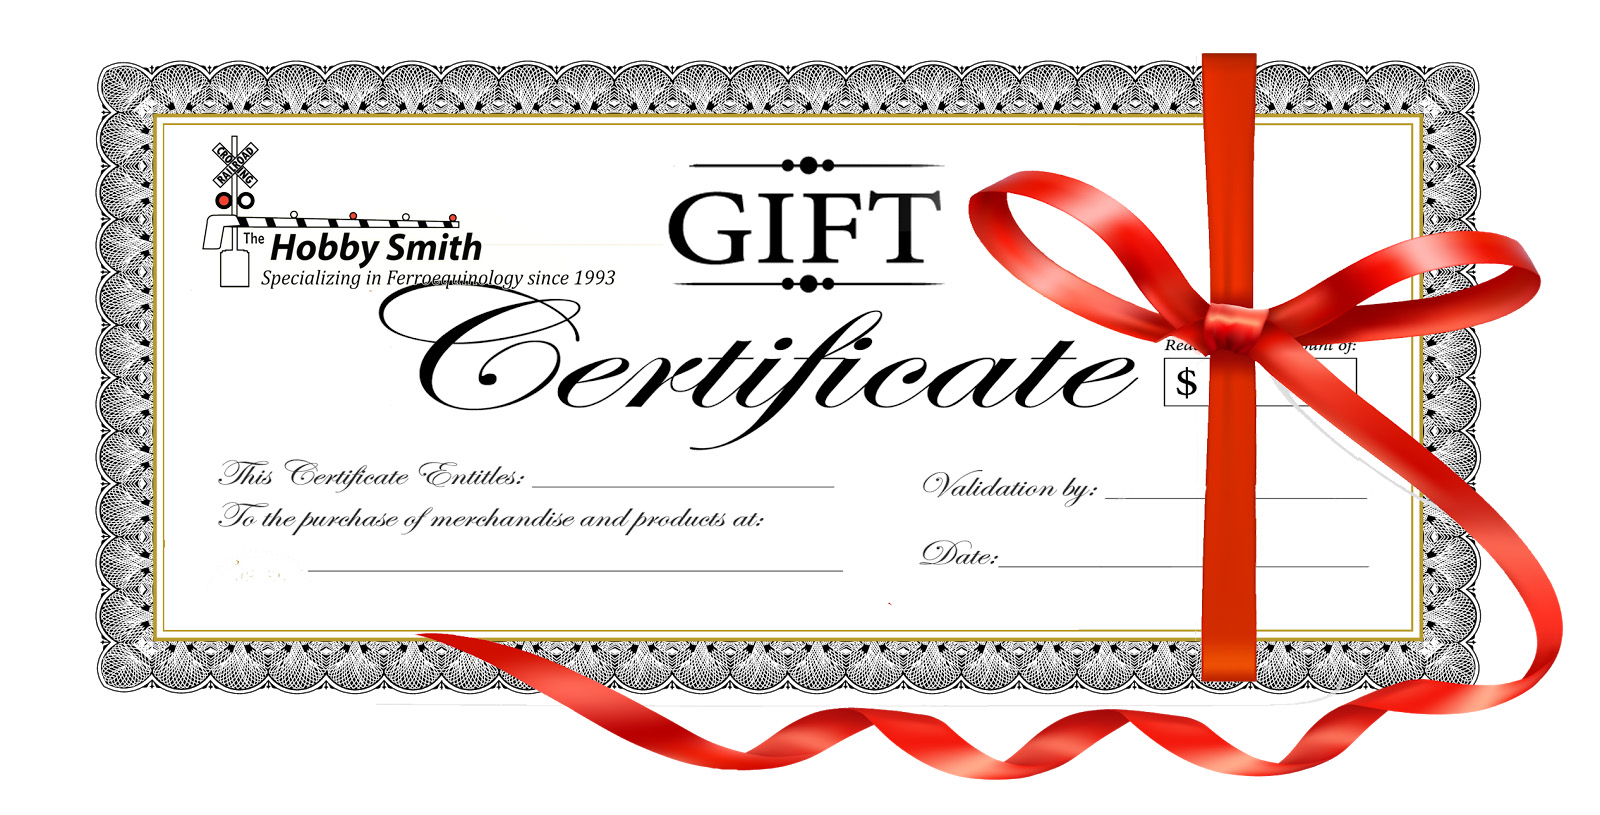 Gift Certificates Available at The Hobby Smith